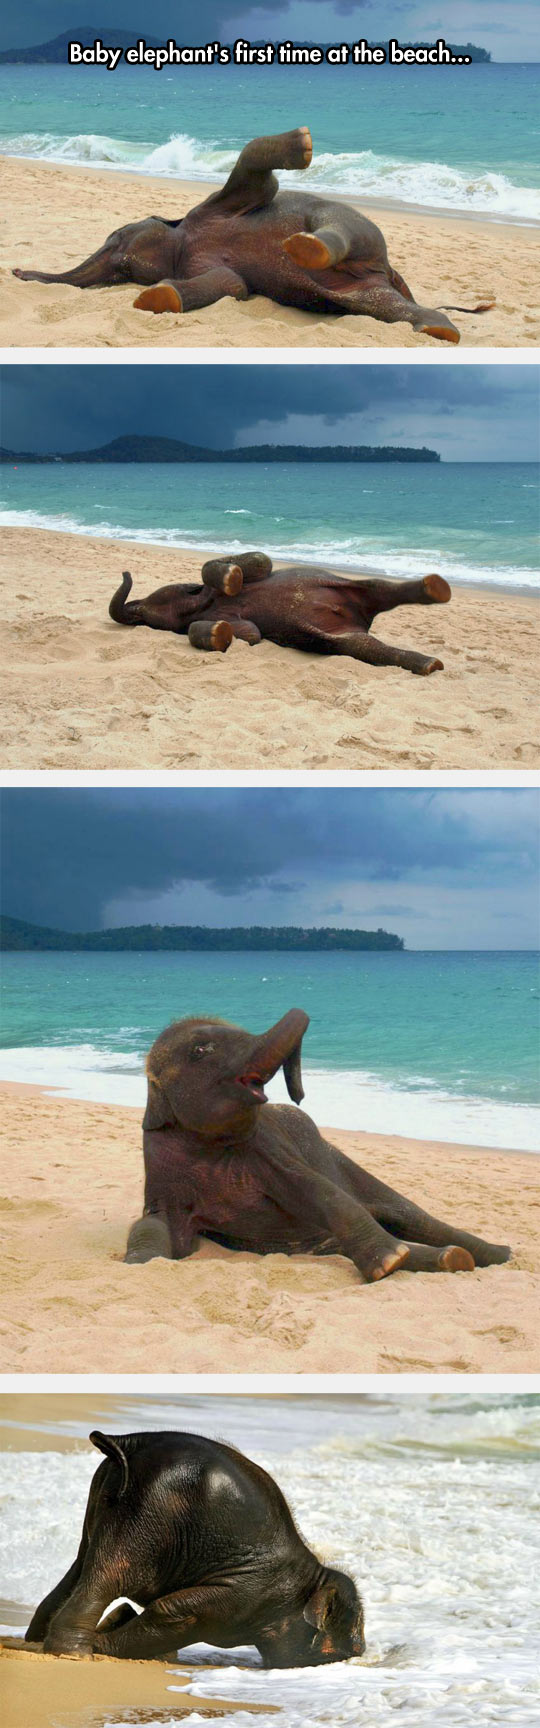 Baby elephant first time at the beach photo series - Wititudes